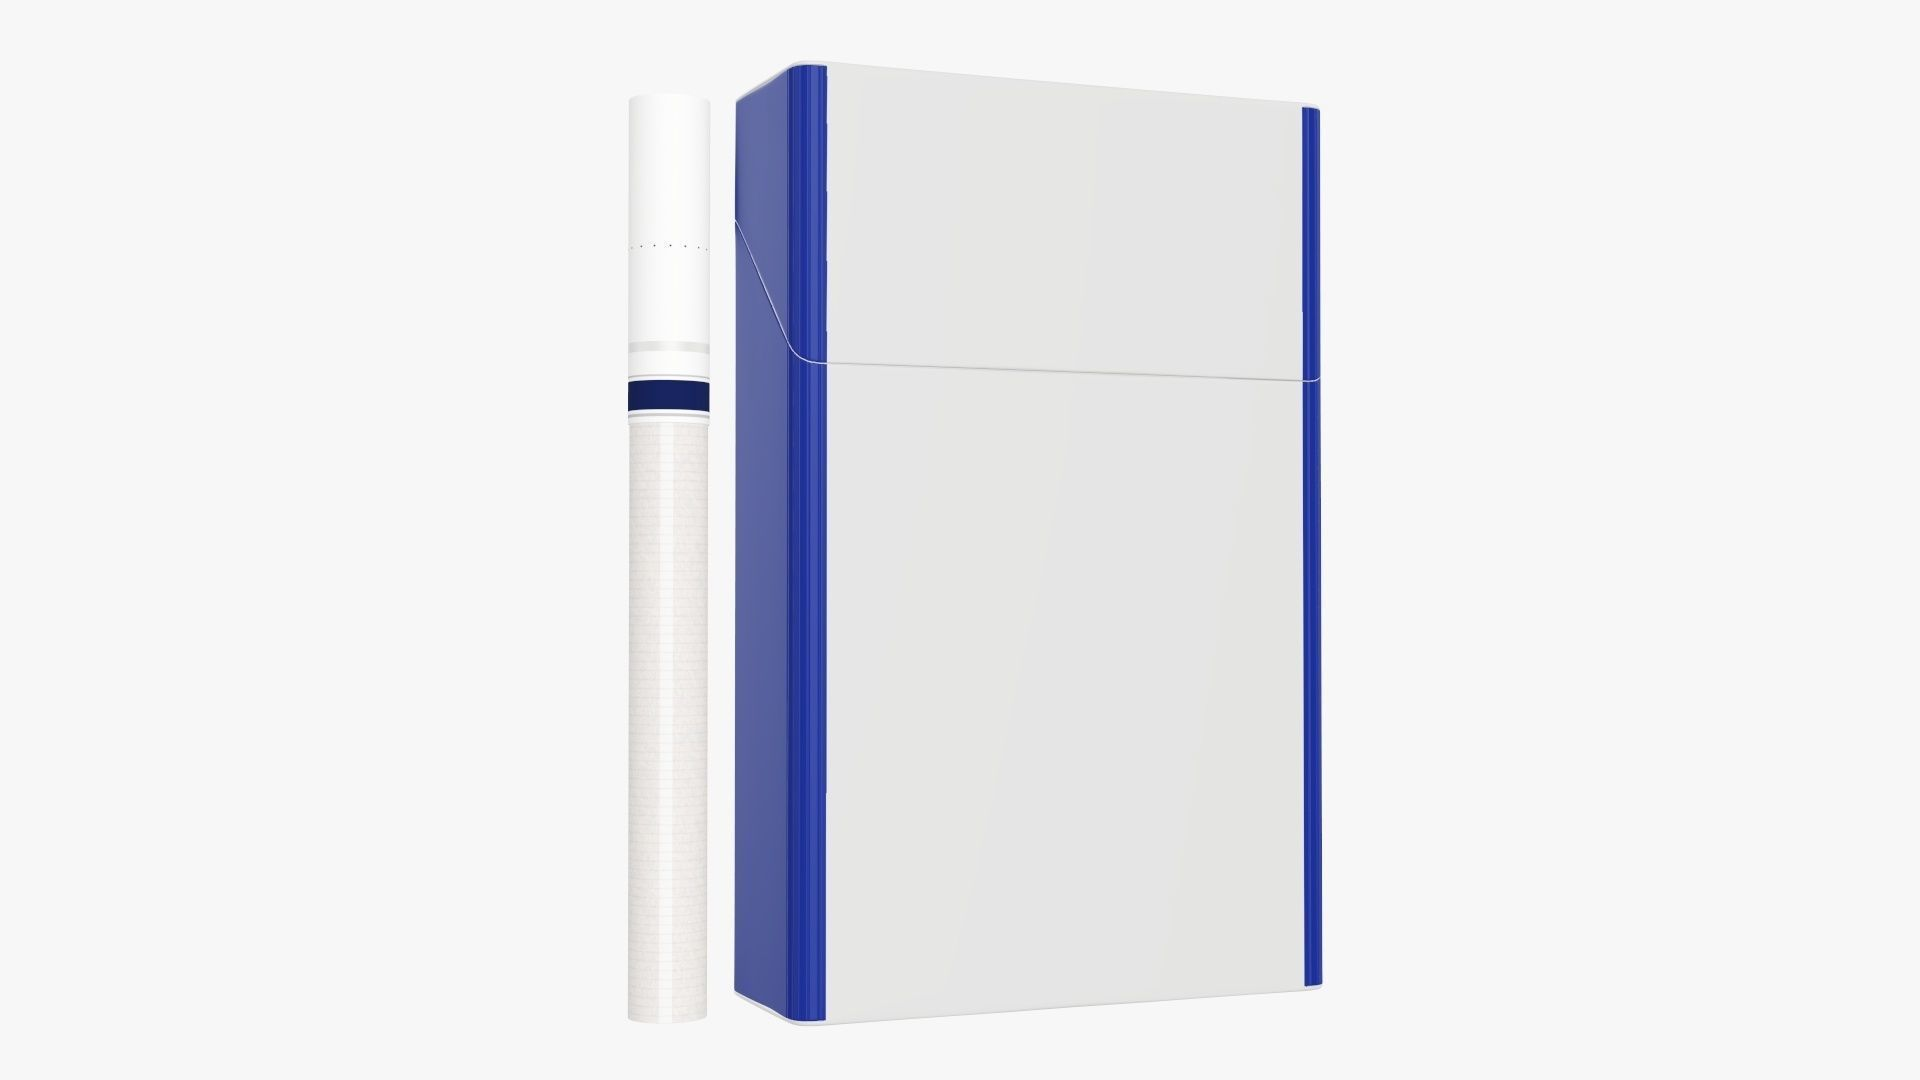 Cigarettes slim compact pack closed